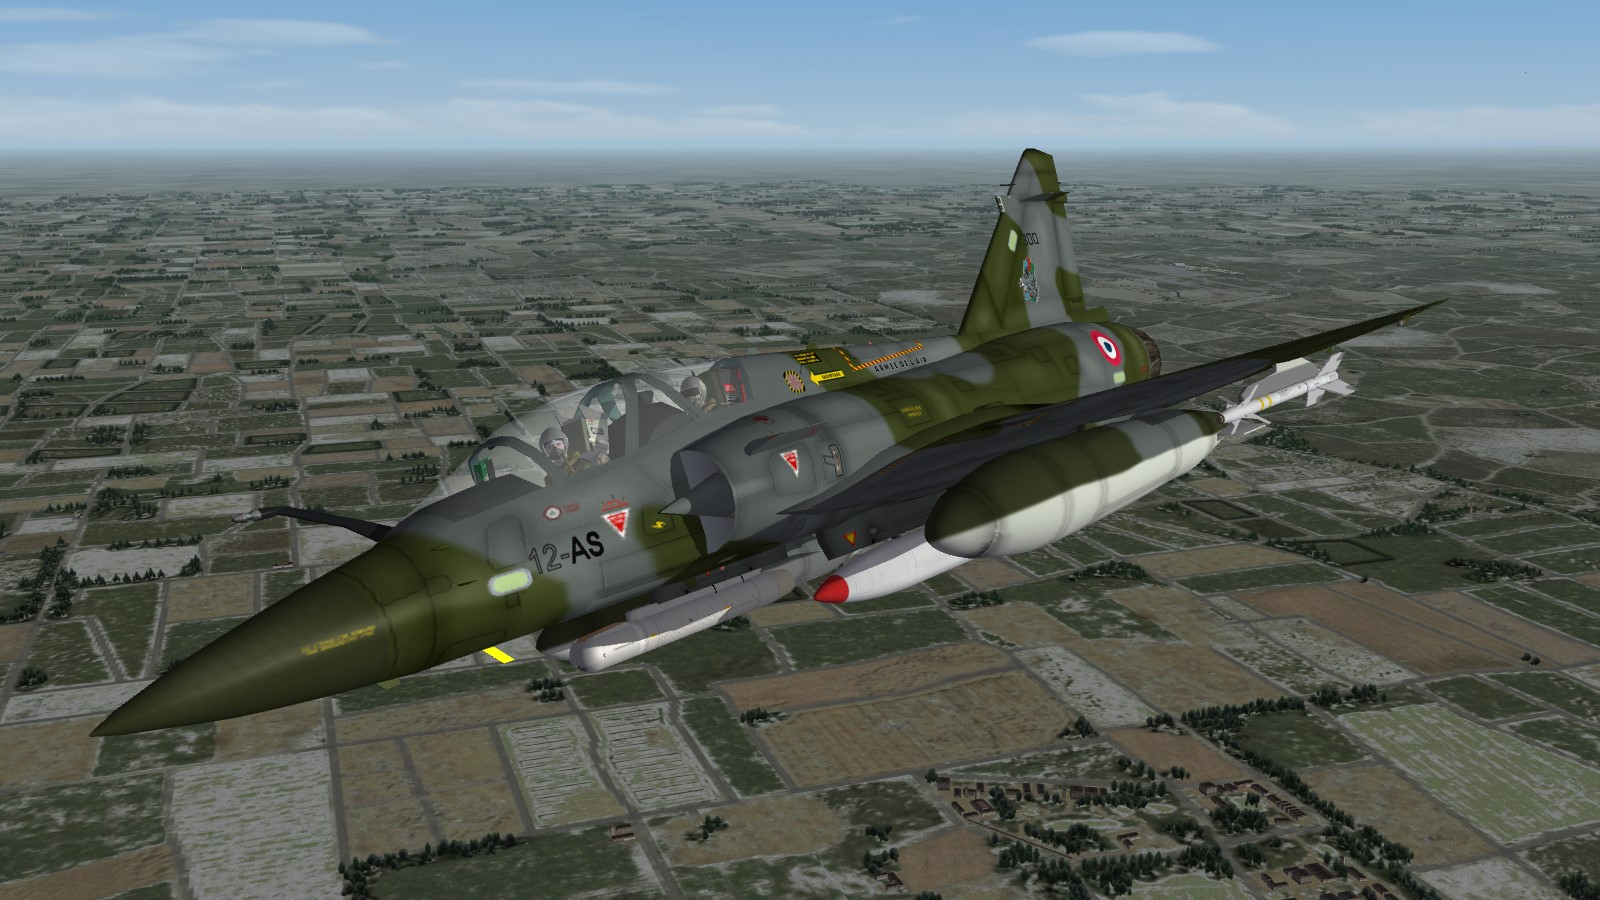 Has there ever been a flight sim with nuclear weapons